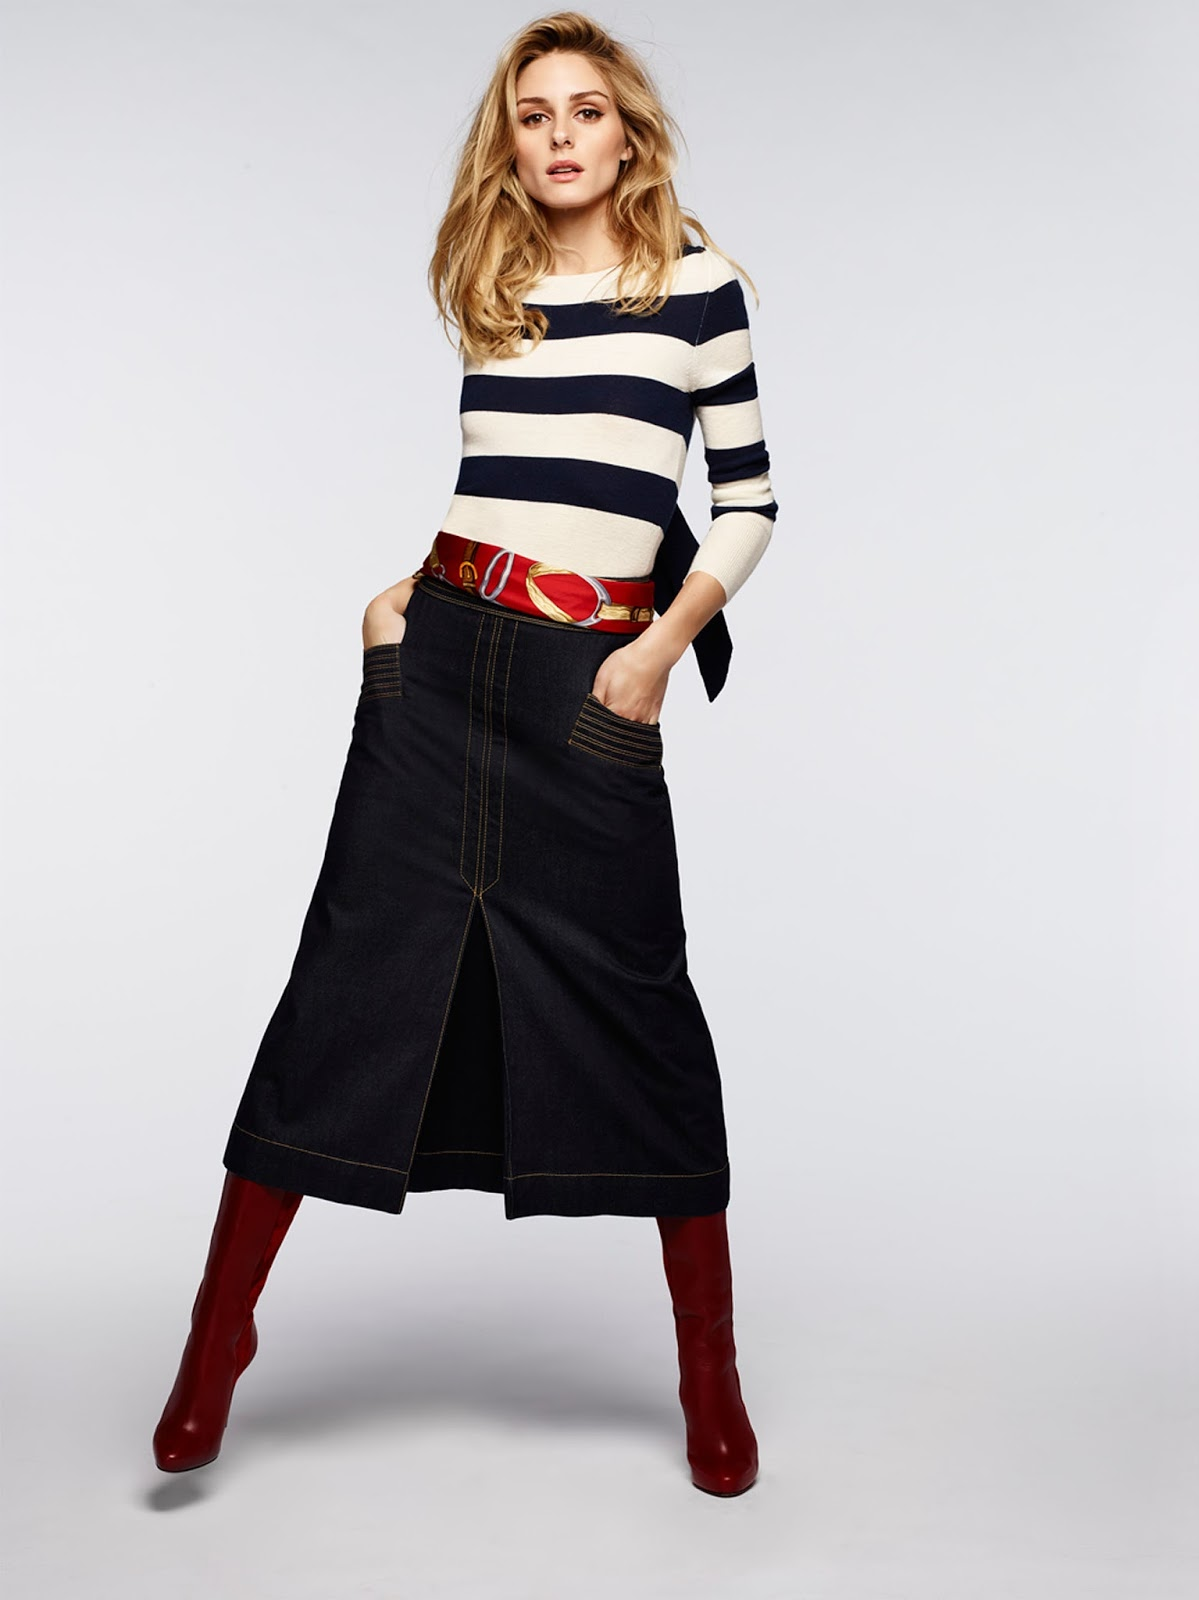 Eniwhere Fashion - Olivia Palermo + Chelsea 28 for Nordstrom